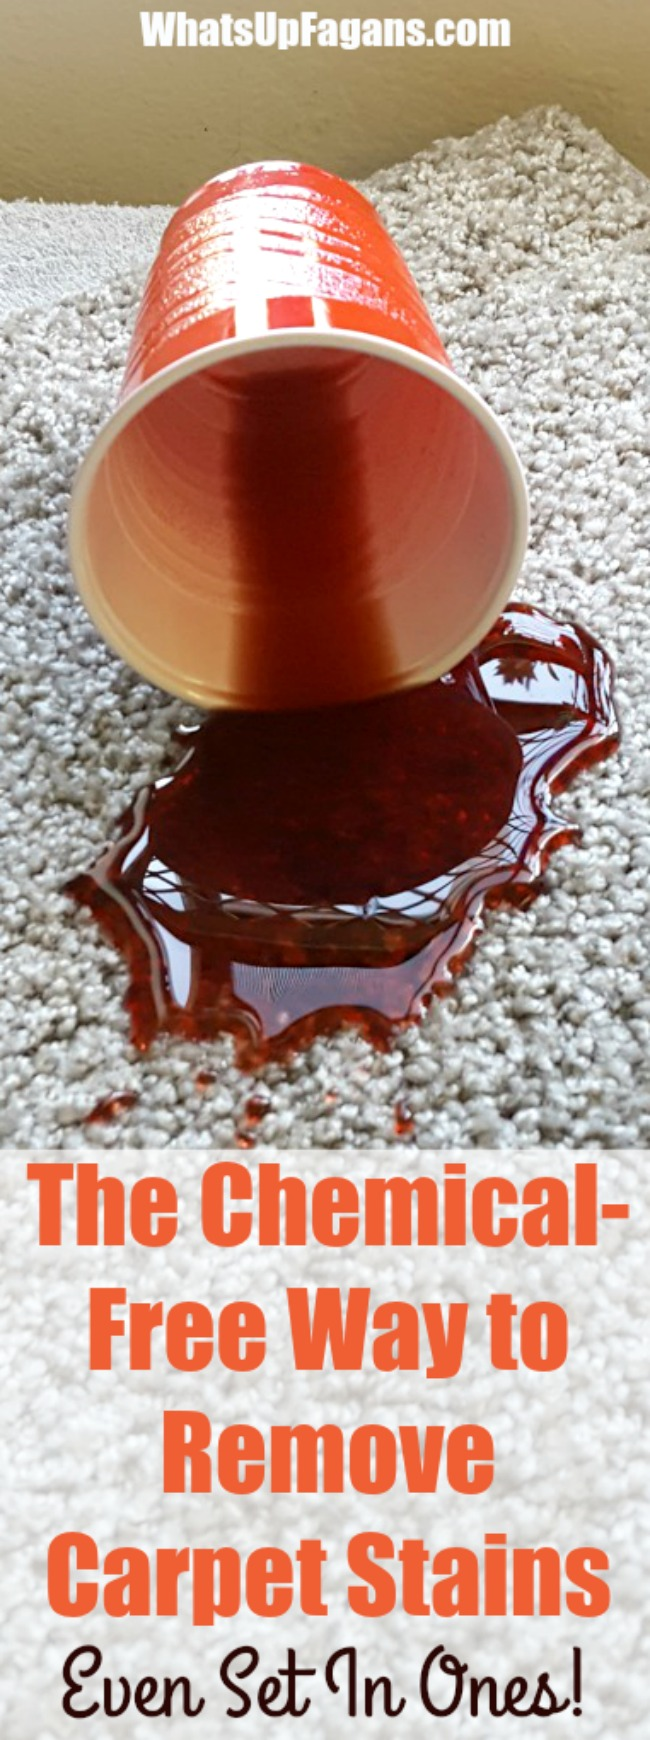 The Surprisingly Easy Chemical-Free Way to Remove Carpet Stains